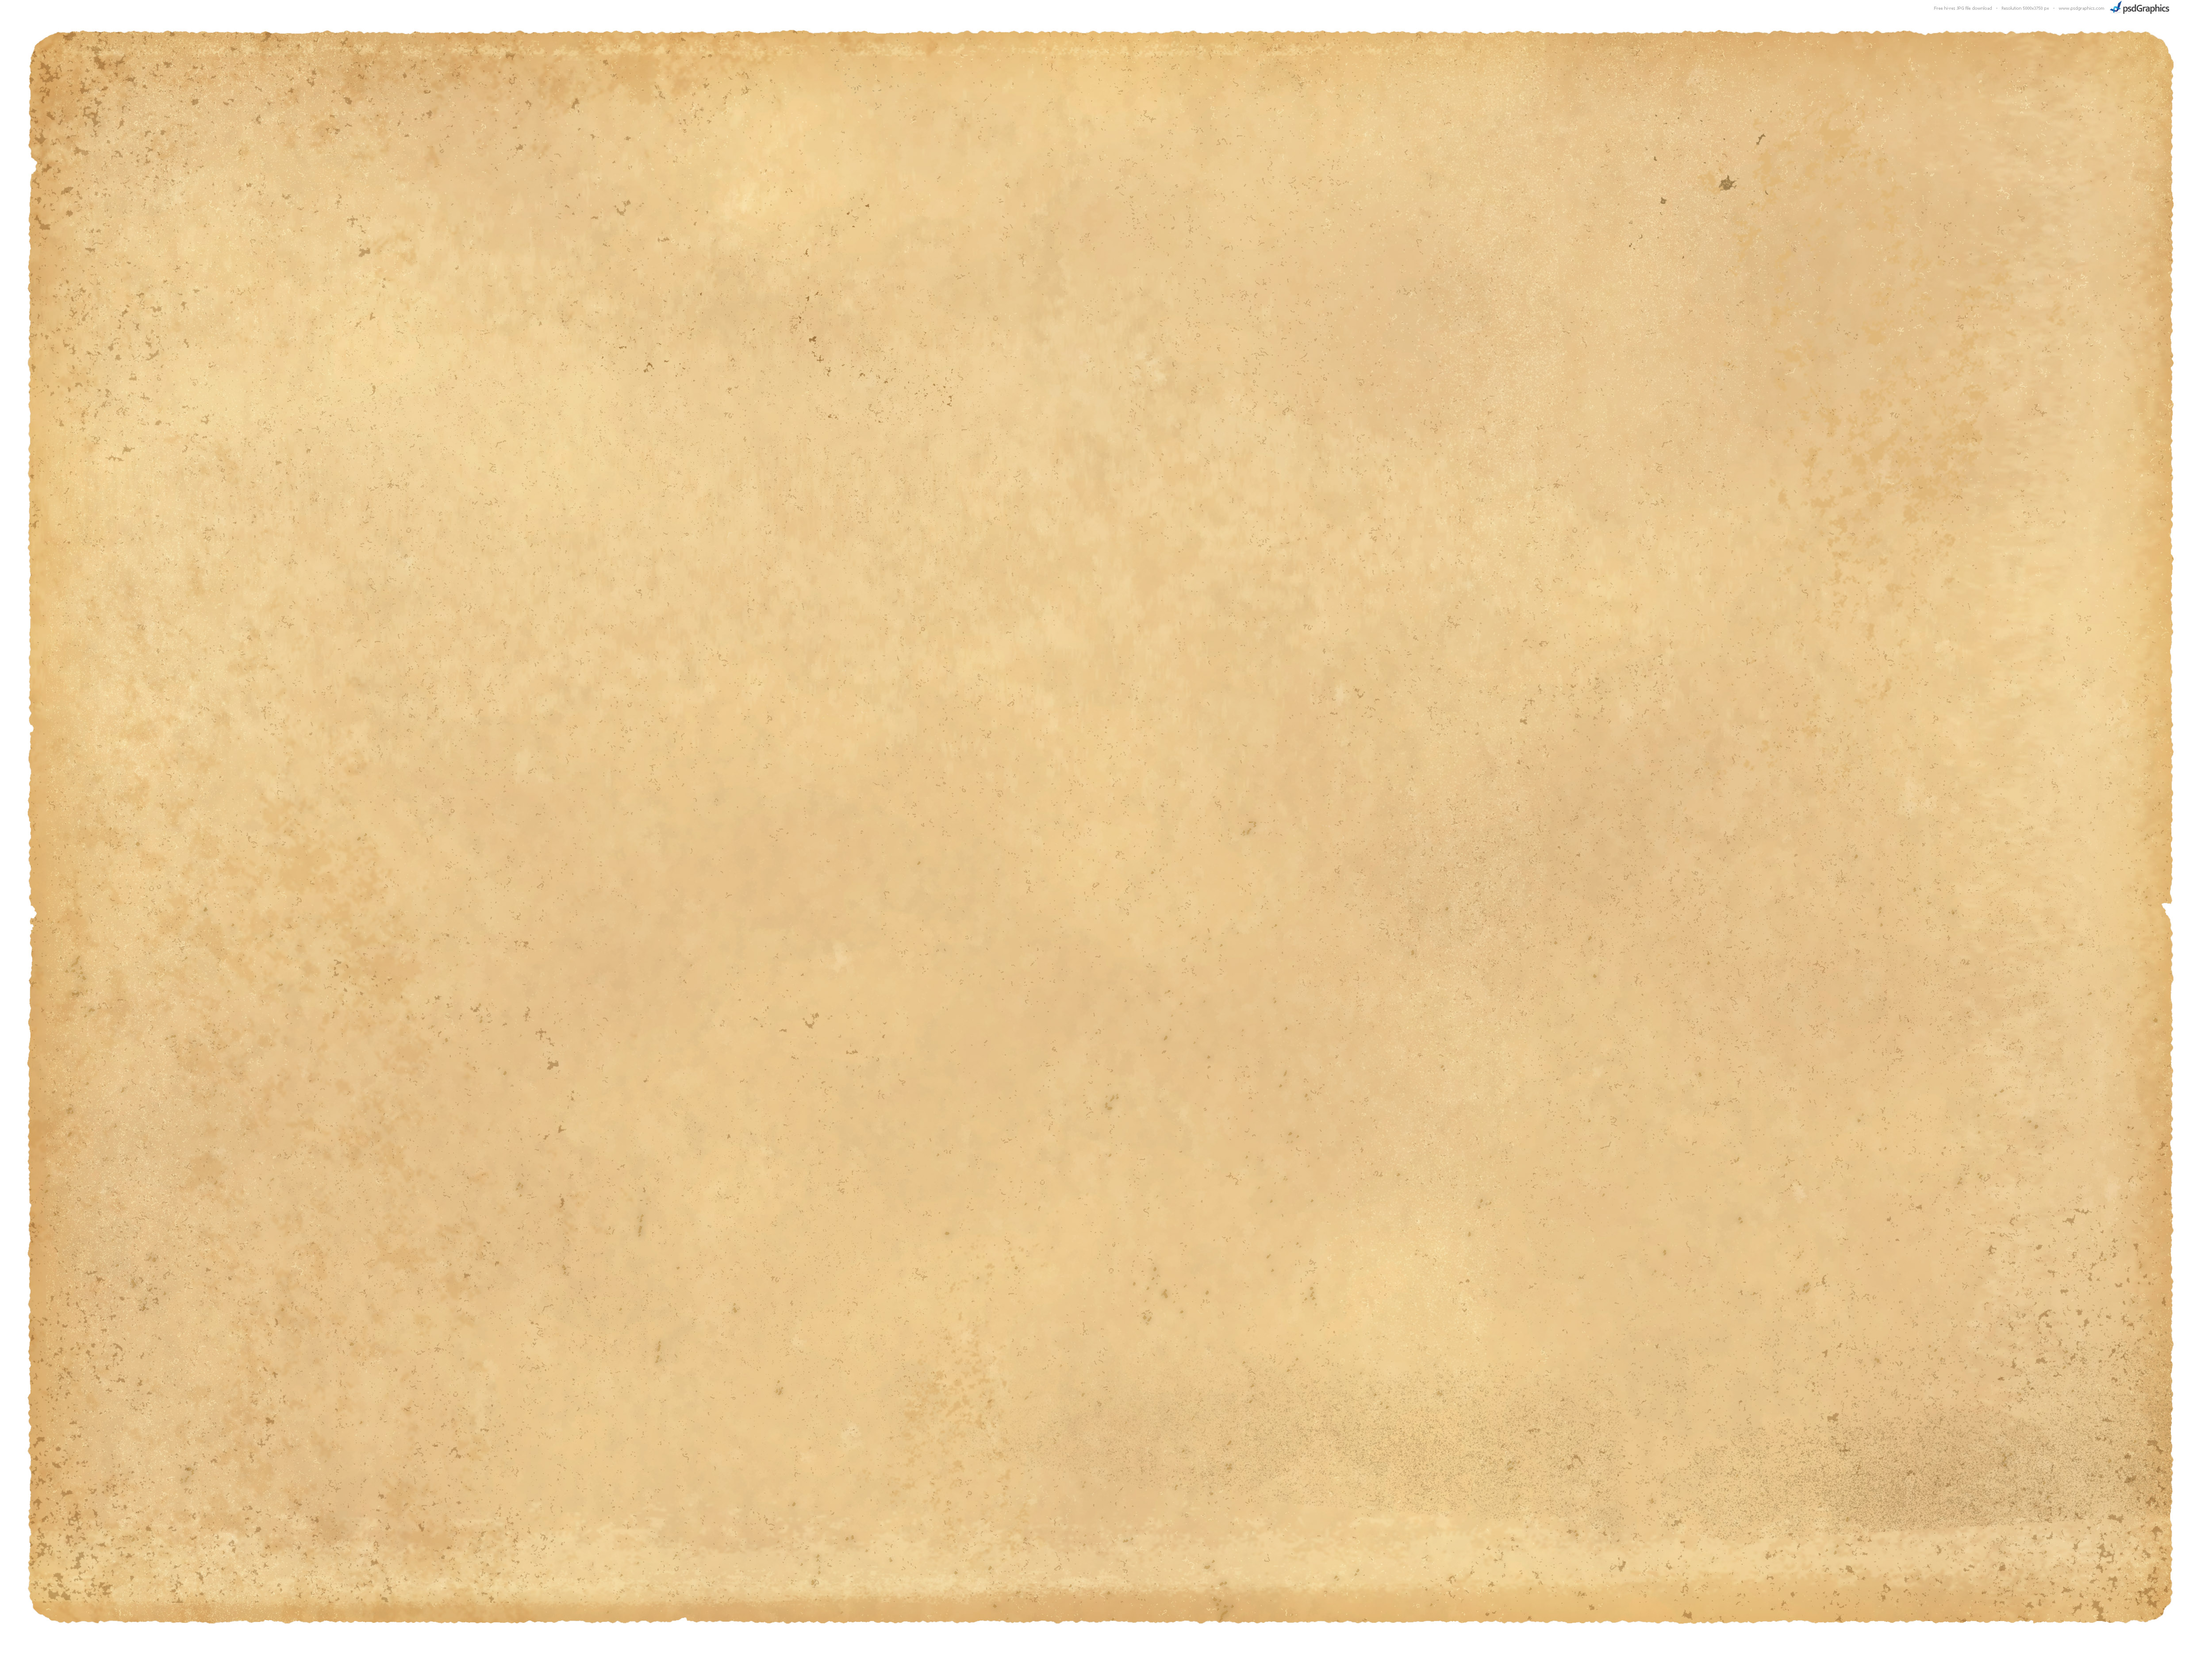 Simple Old Paper Background